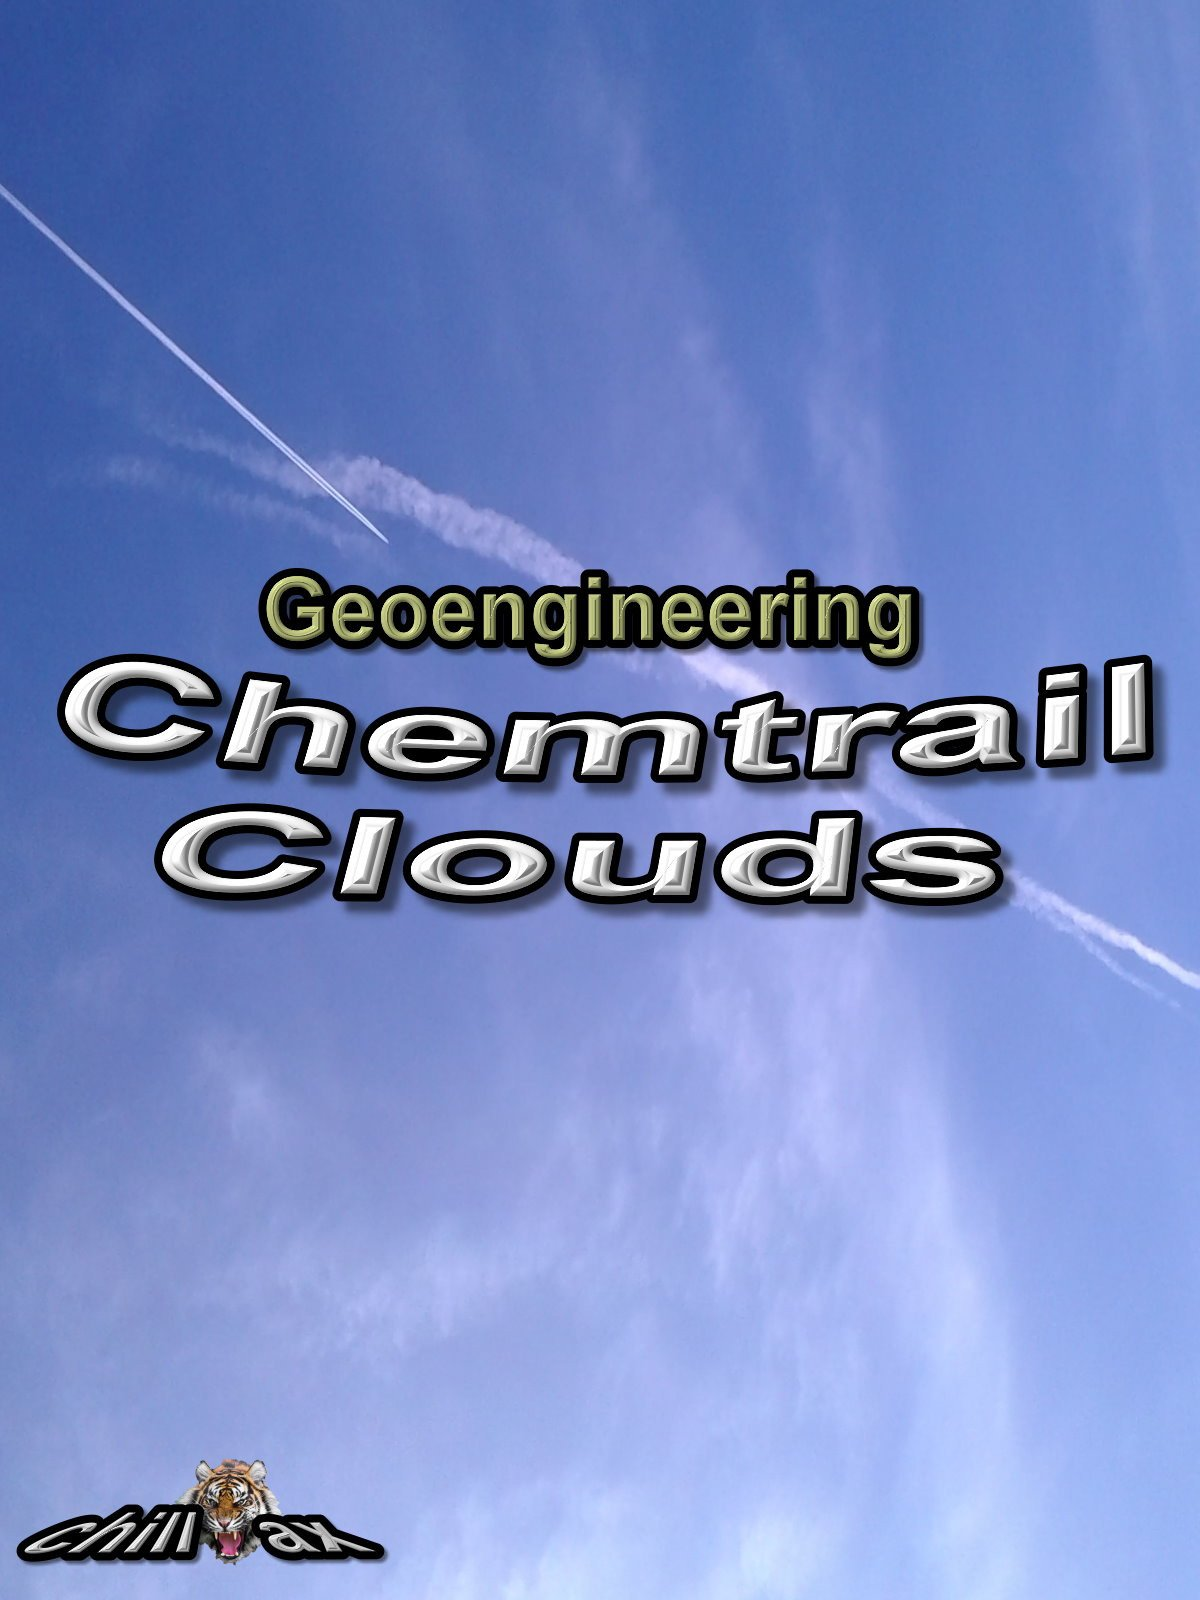 Geoengineering Chemtrail Clouds